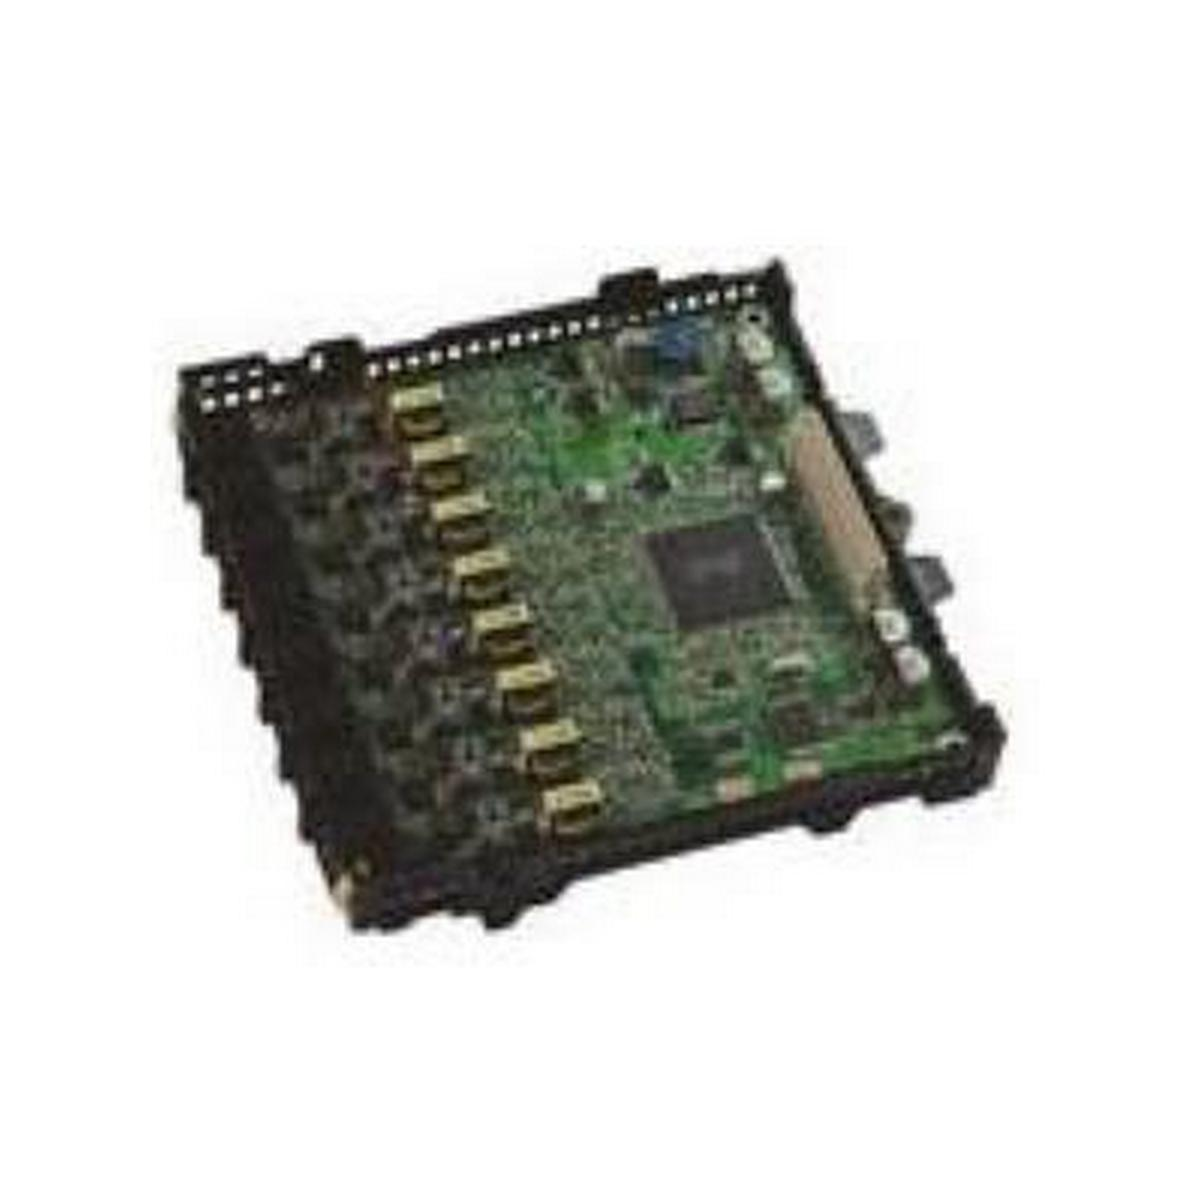 Panasonic KX-TDA5172 8-PORT DIGITAL LINE CARD (DLC8)